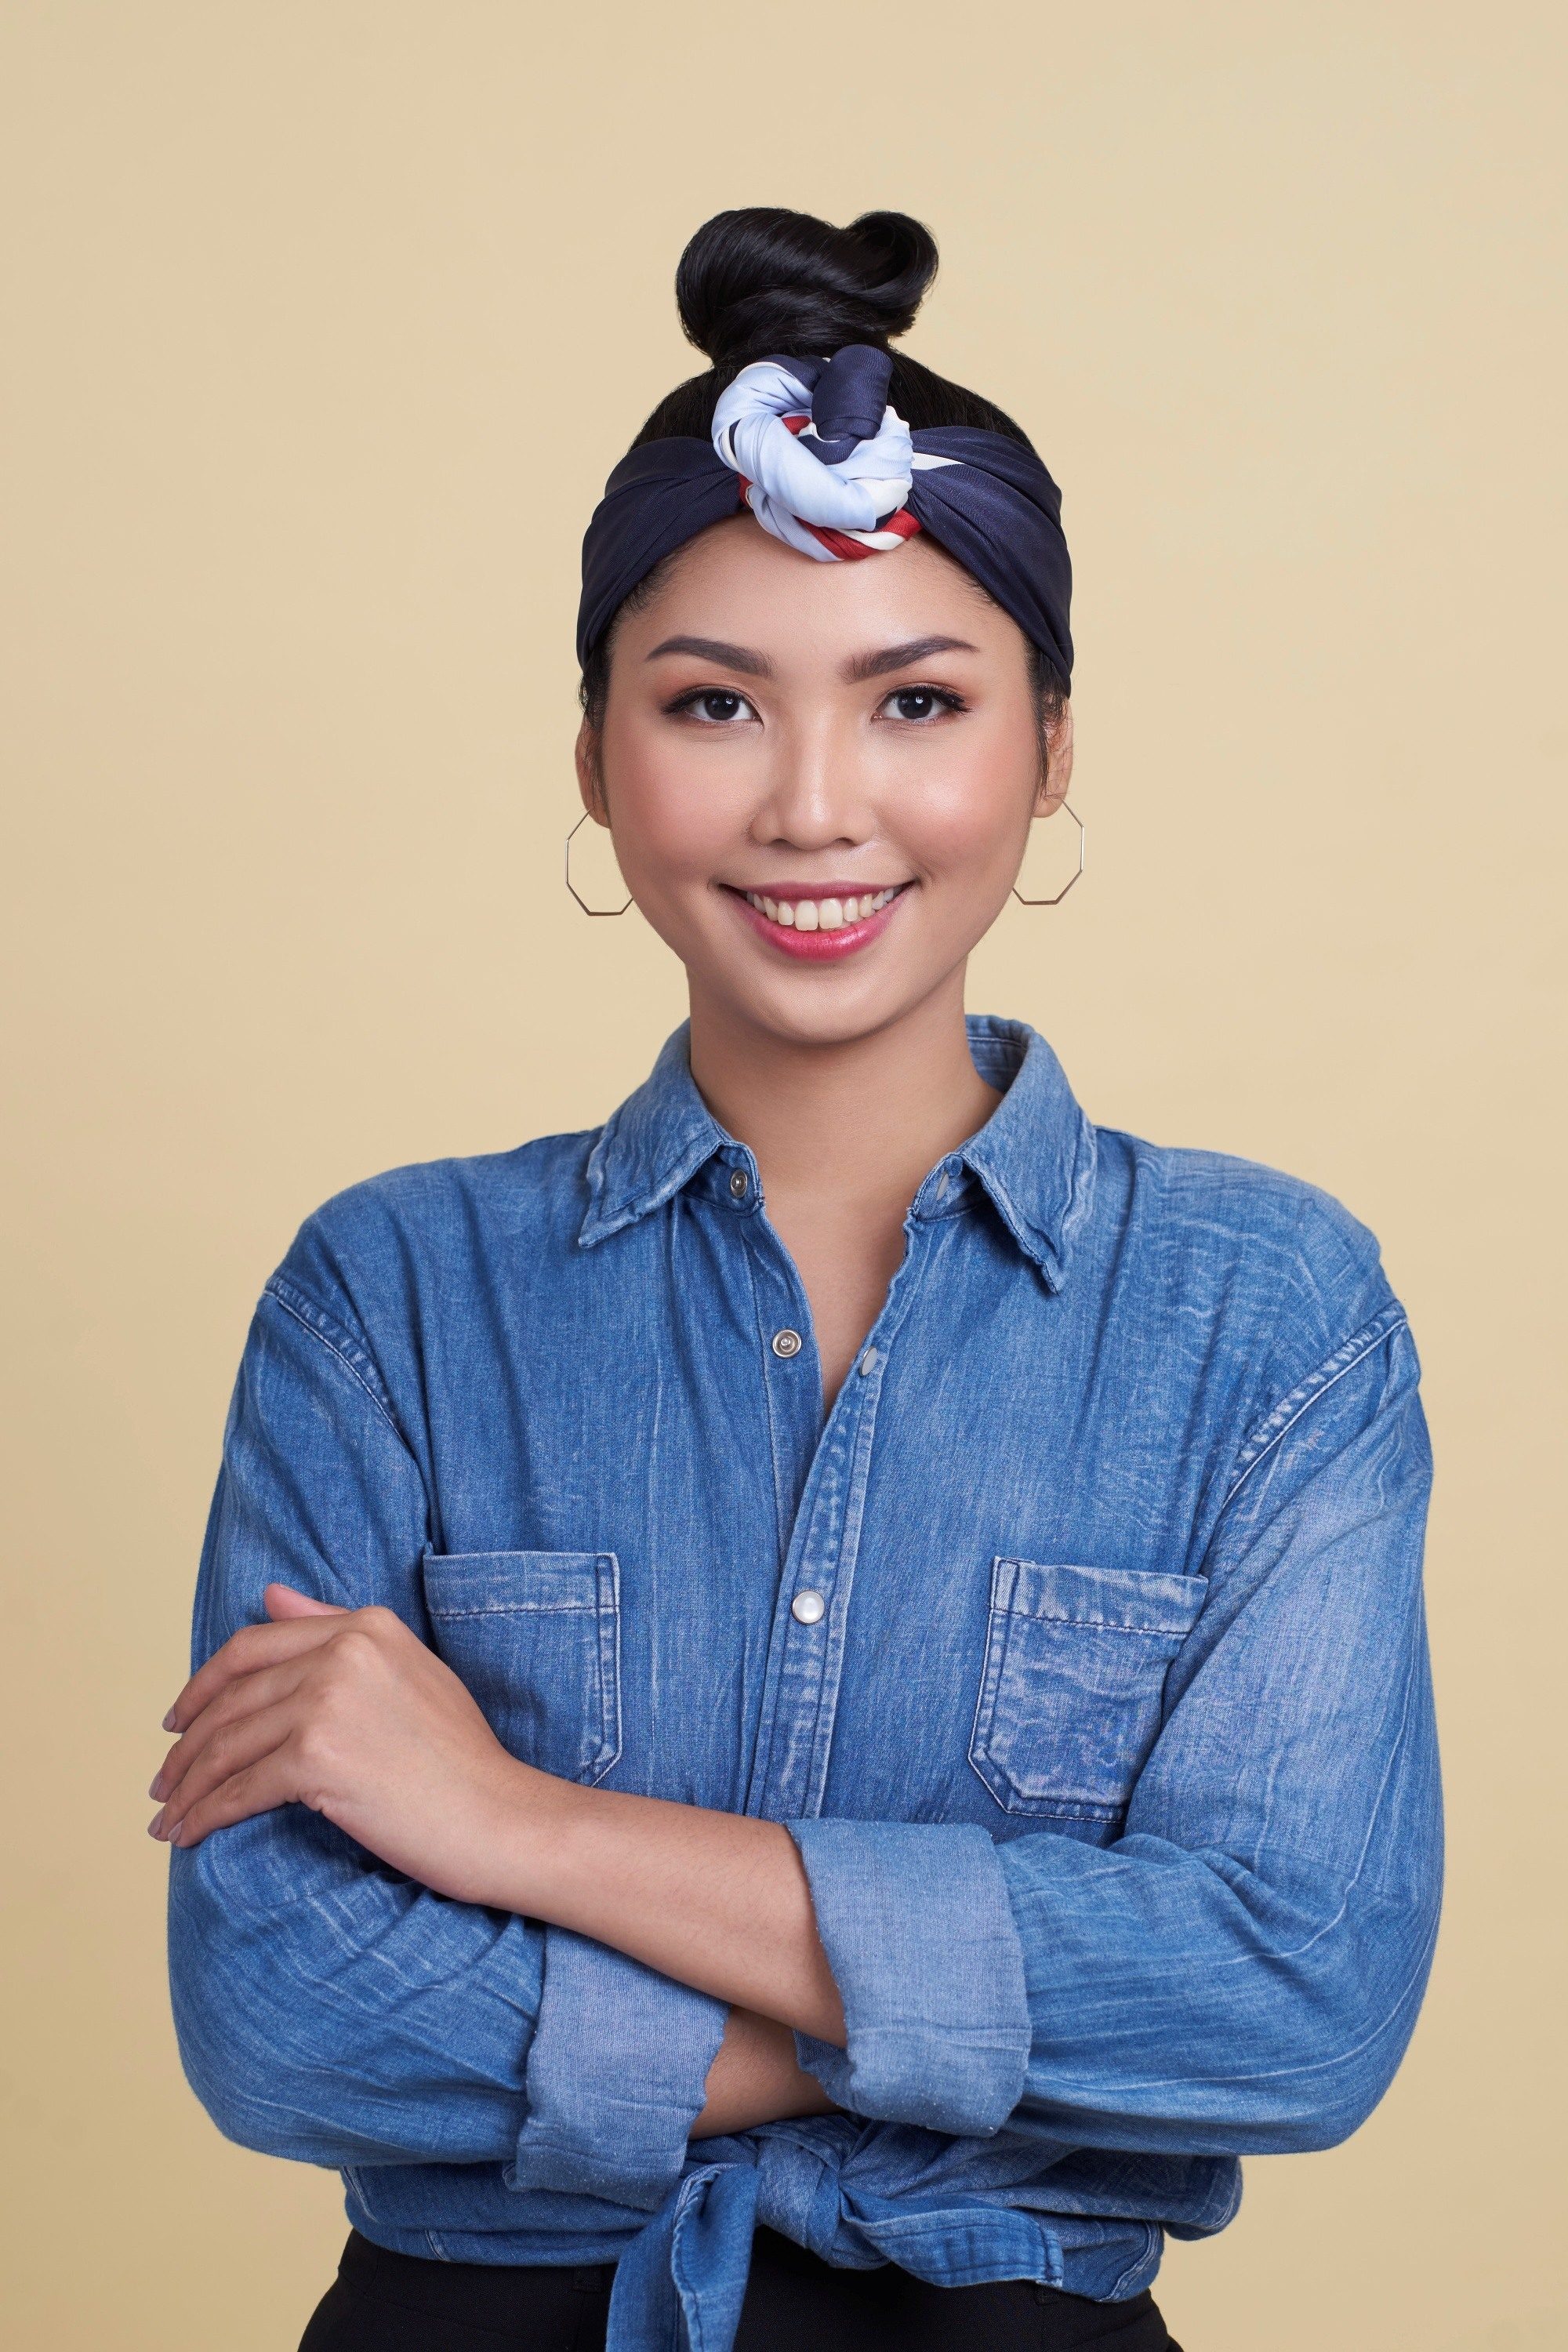 Asian woman with black hair in a top bun with headband wearing a demin jacket